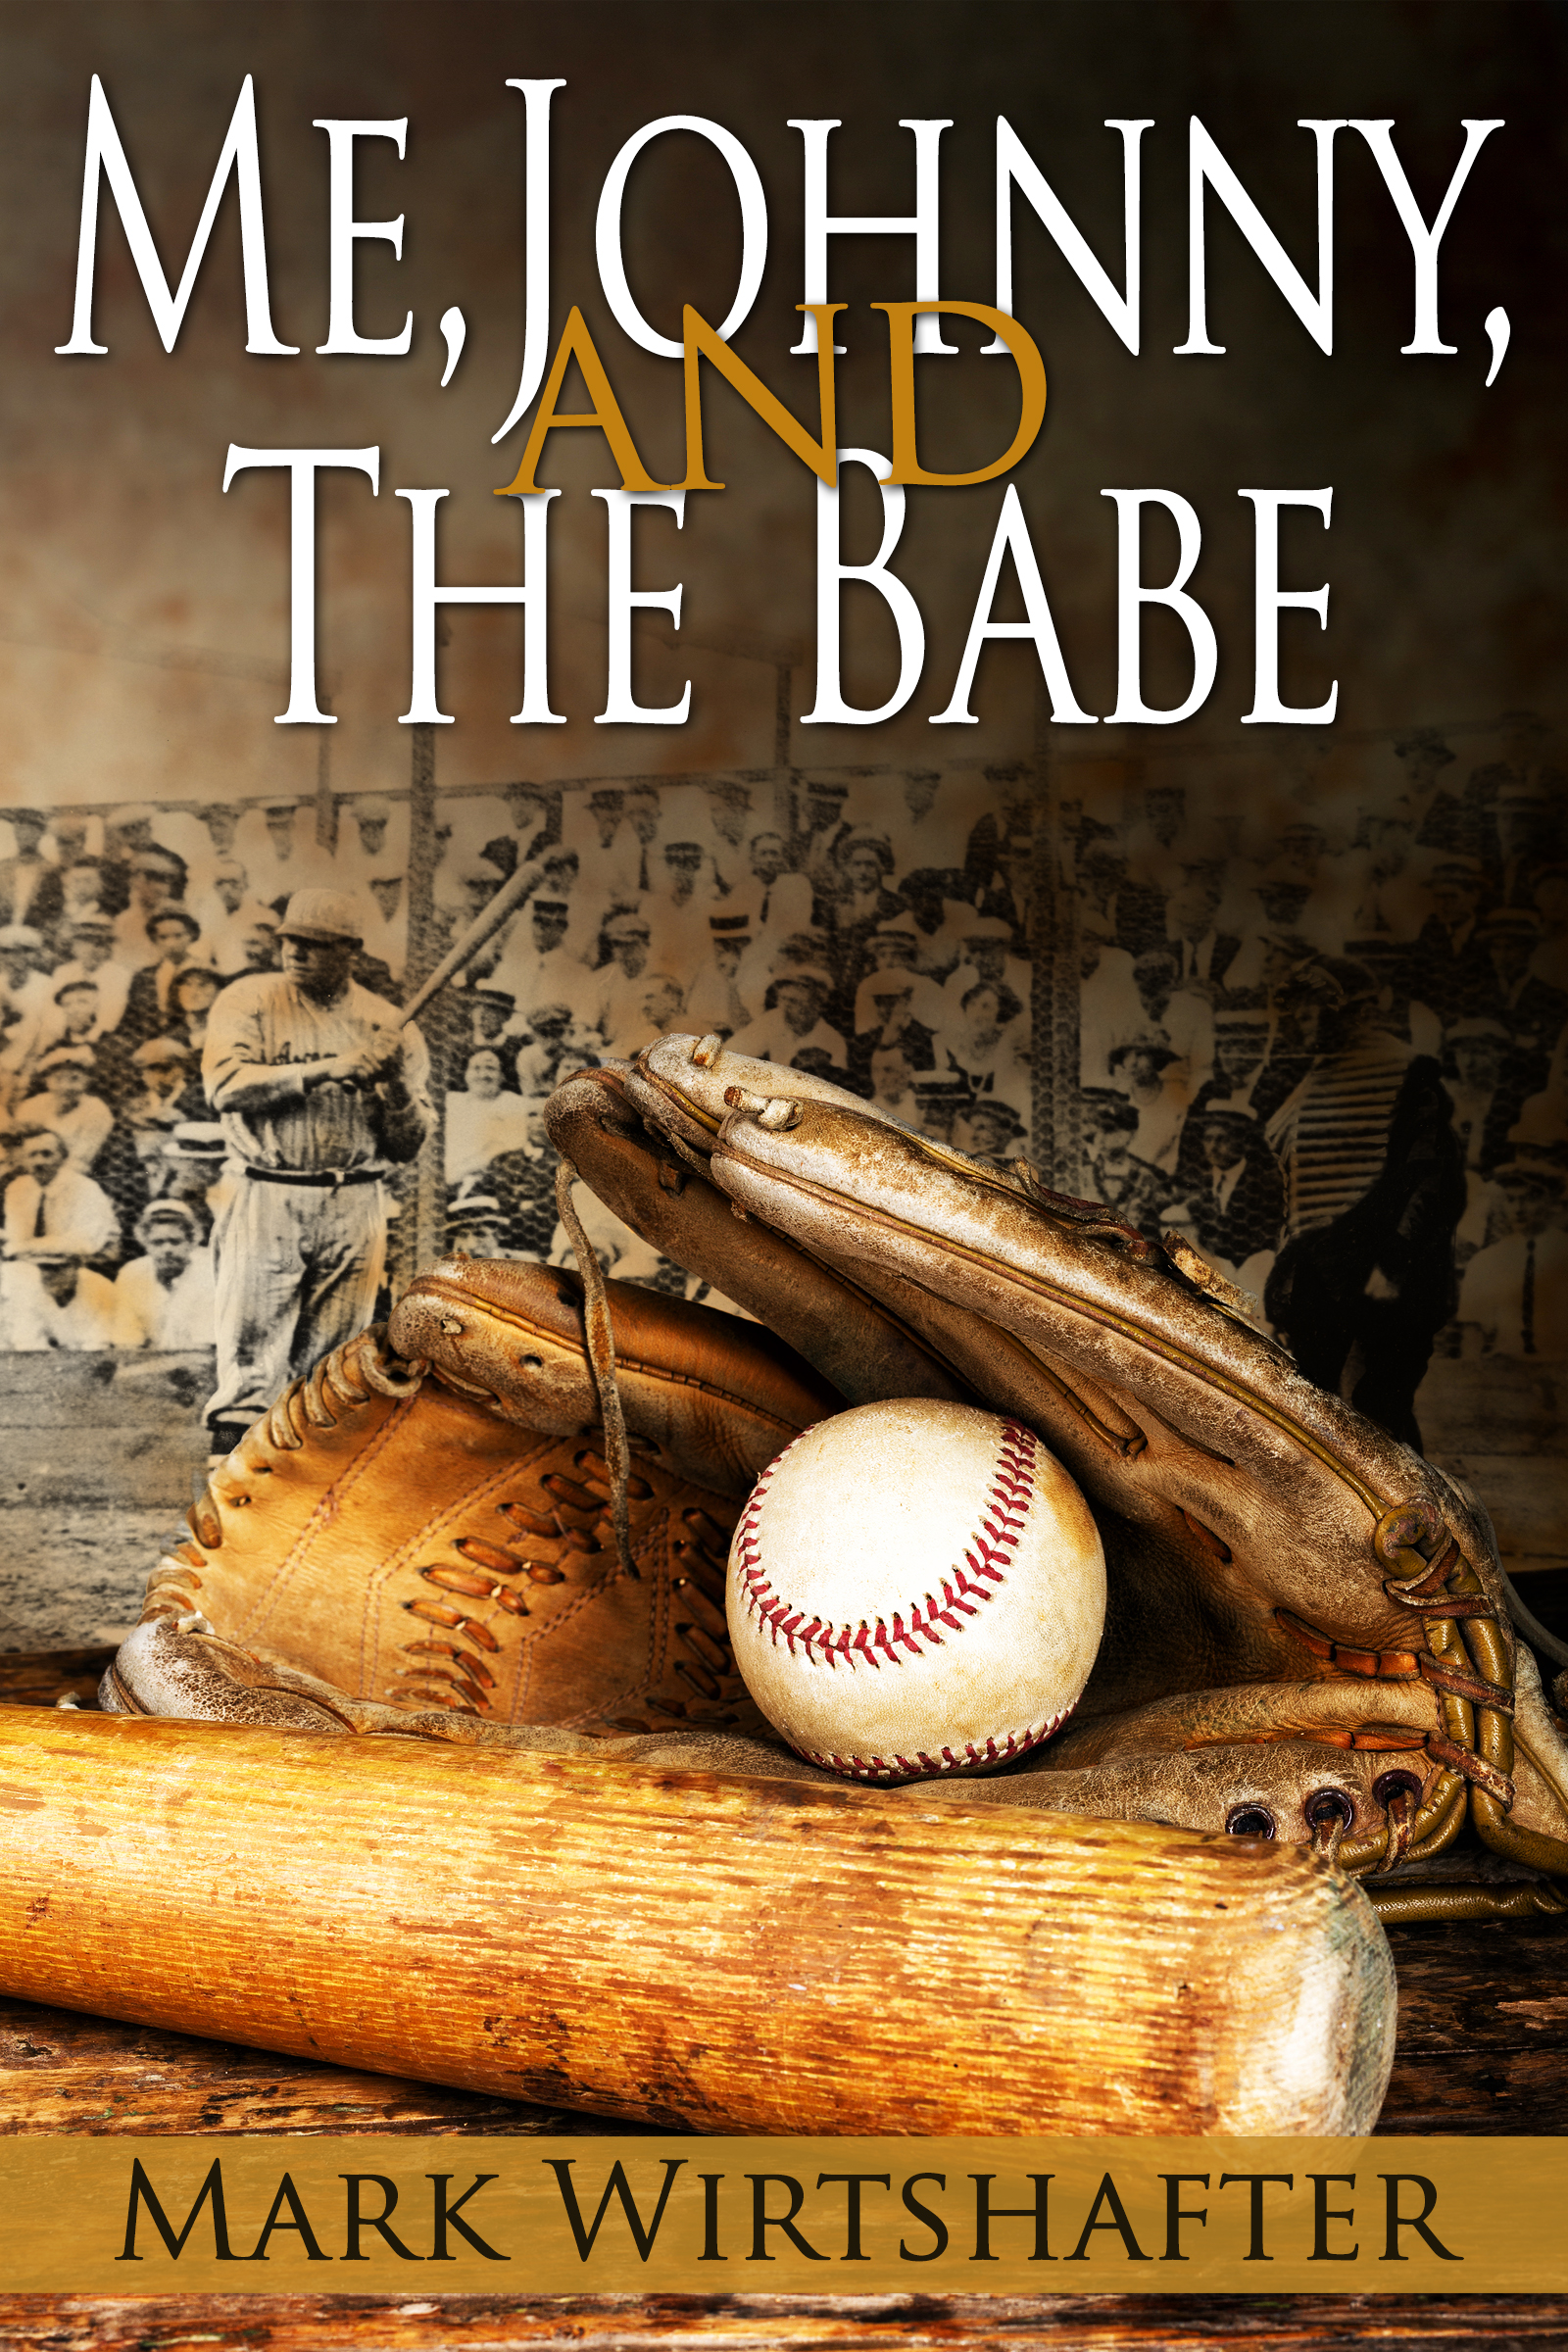 Me, Johnny, And The Babe, By Mark Wirtshafter, Free